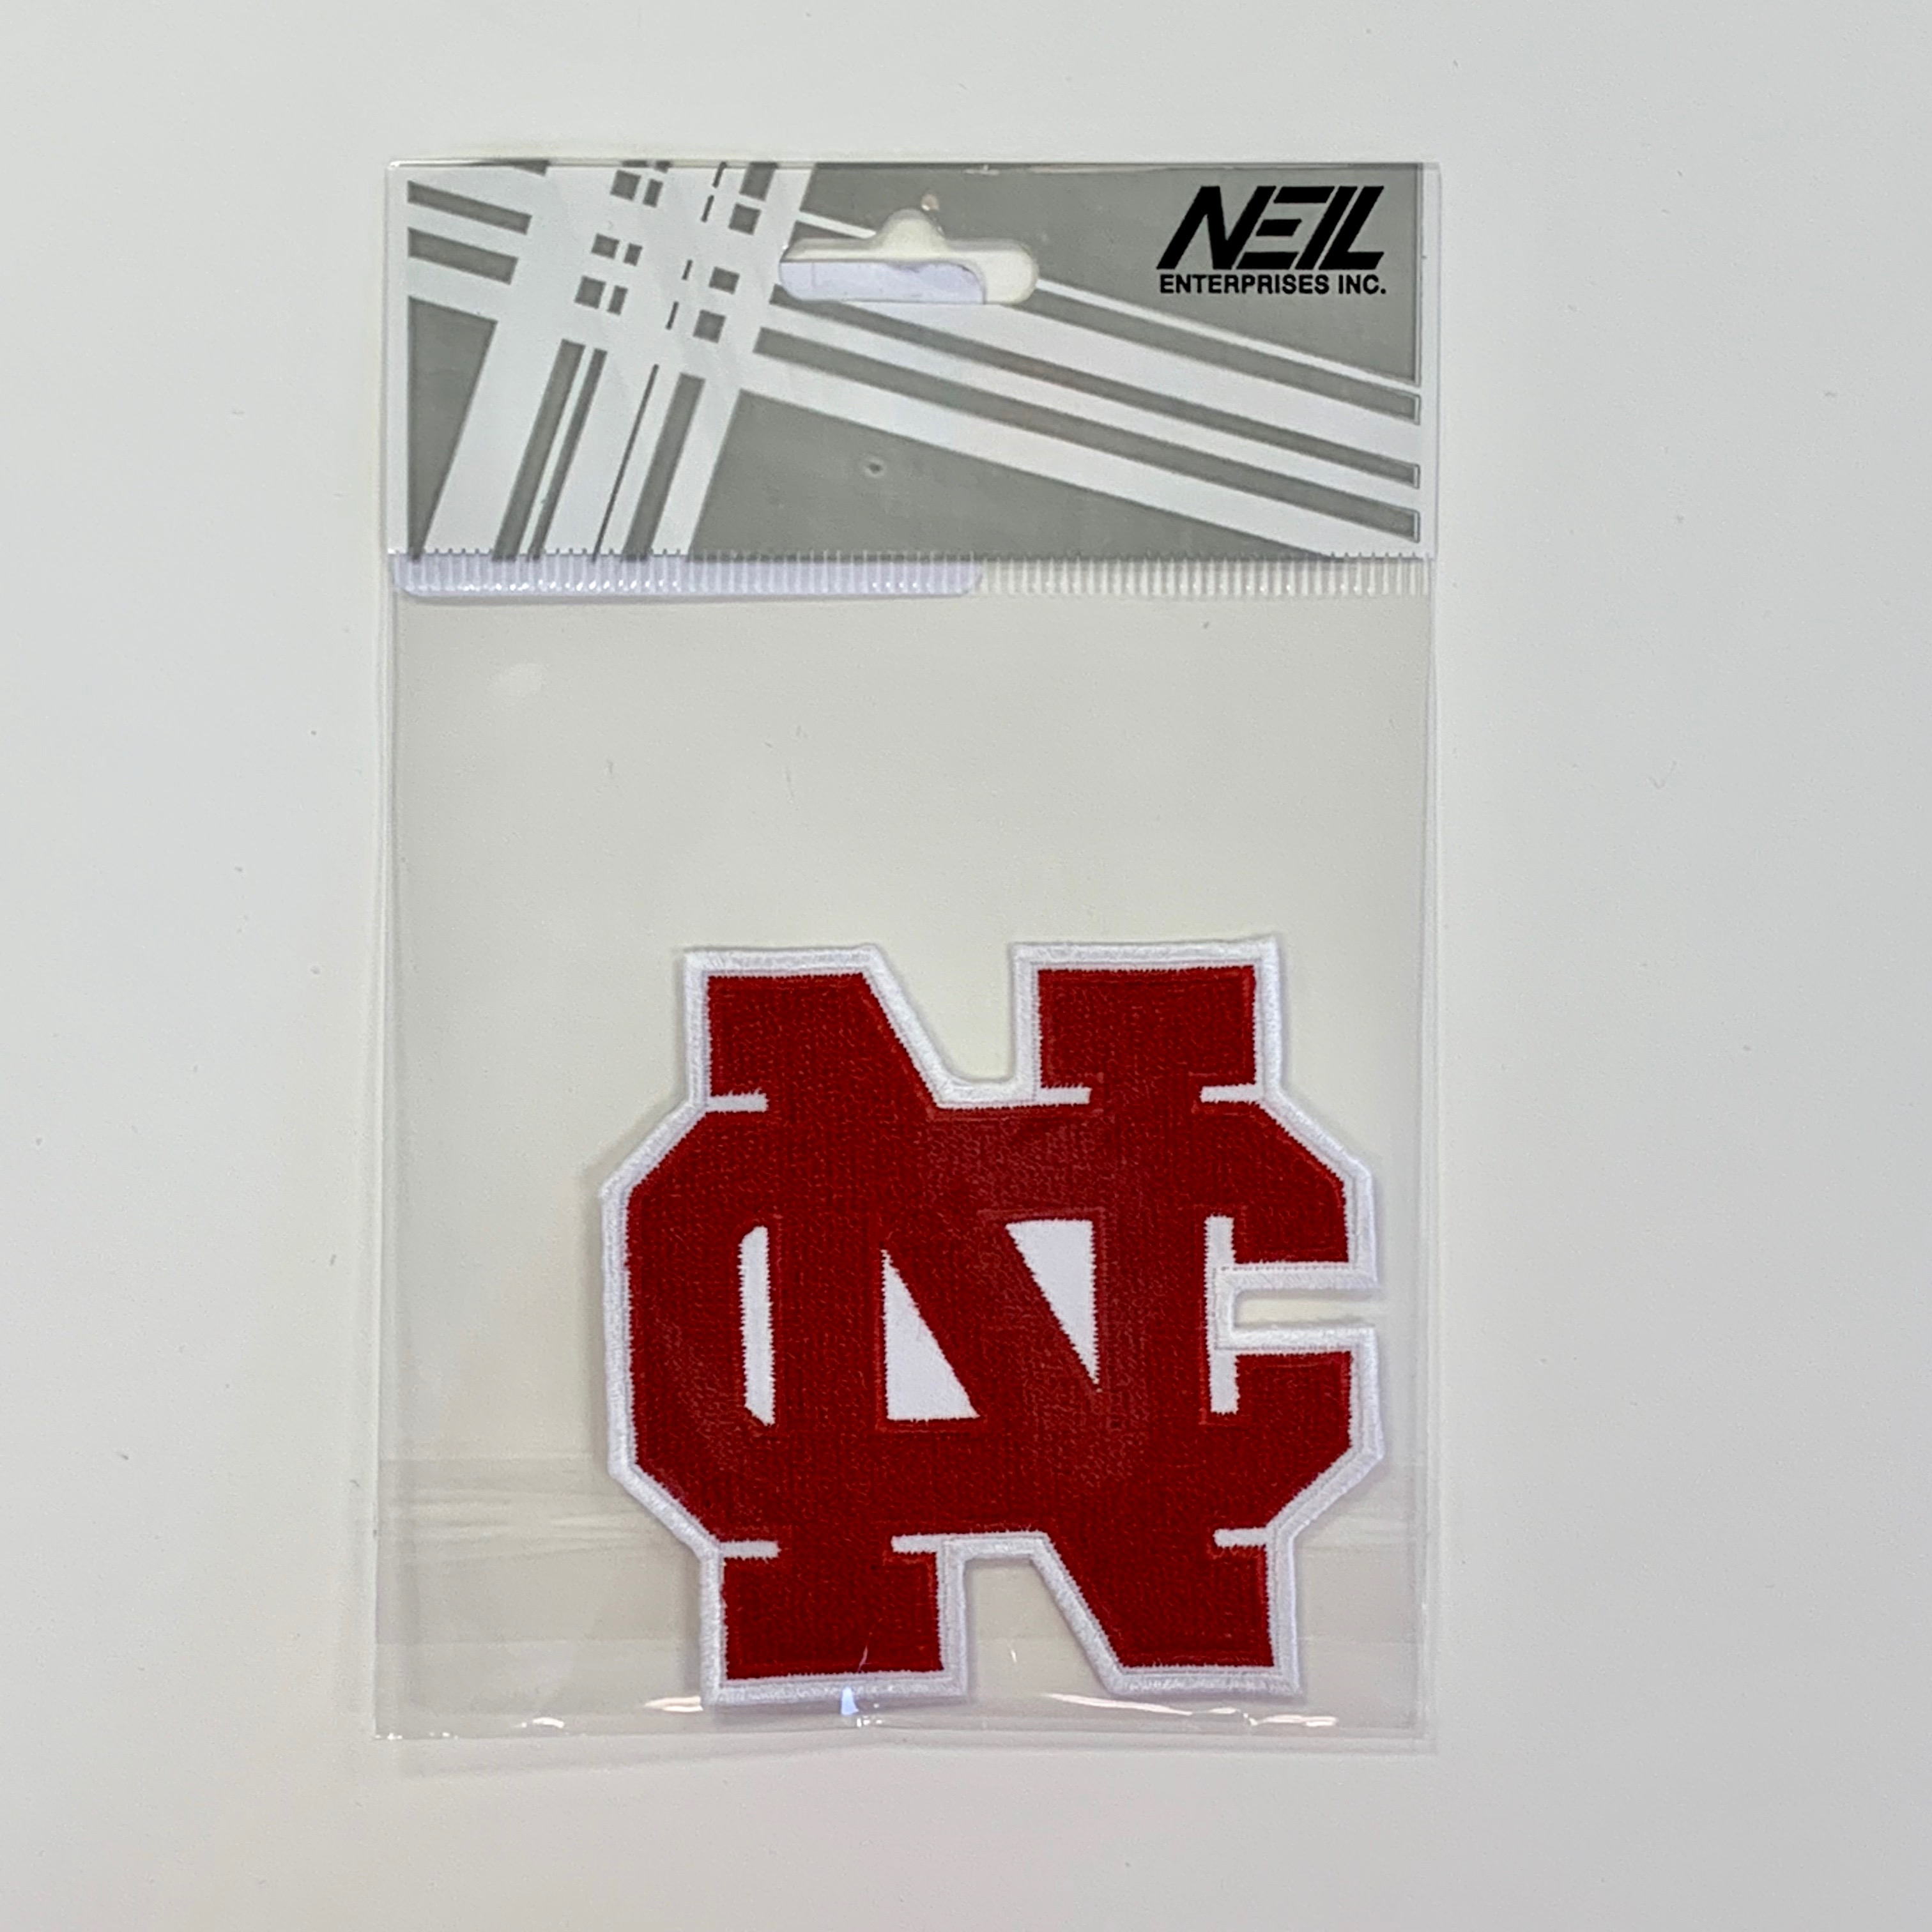 Image for the North Central College Embroidered Patch product